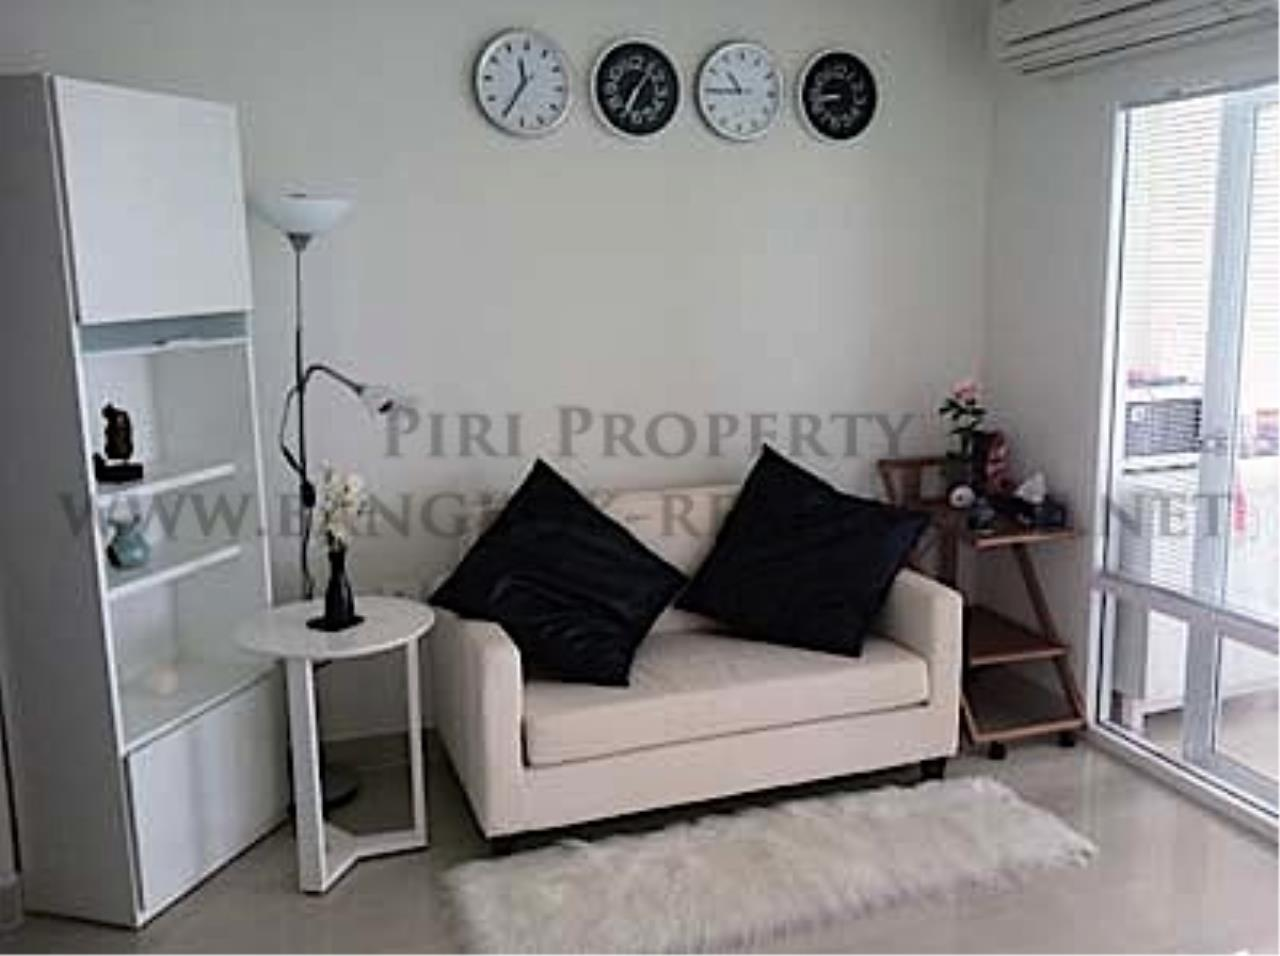 Piri Property Agency's iHouse - Nicely Furnished One Bedroom Unit 1